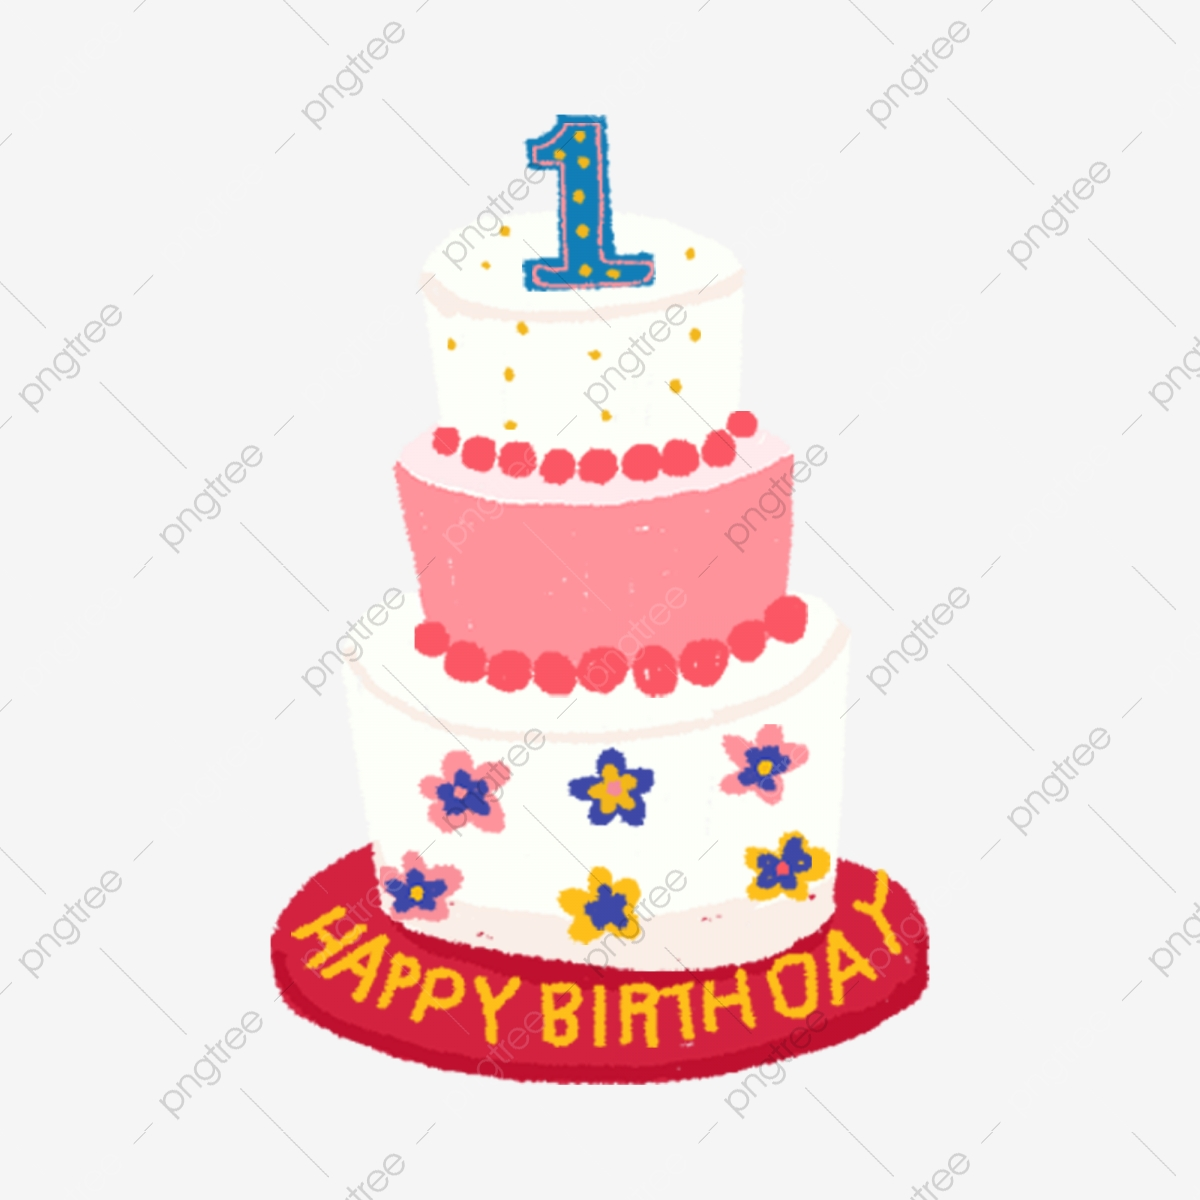 Swell A Three Tiered Birthday Cake Birthday Cake Three Tiered Cake Funny Birthday Cards Online Inifofree Goldxyz